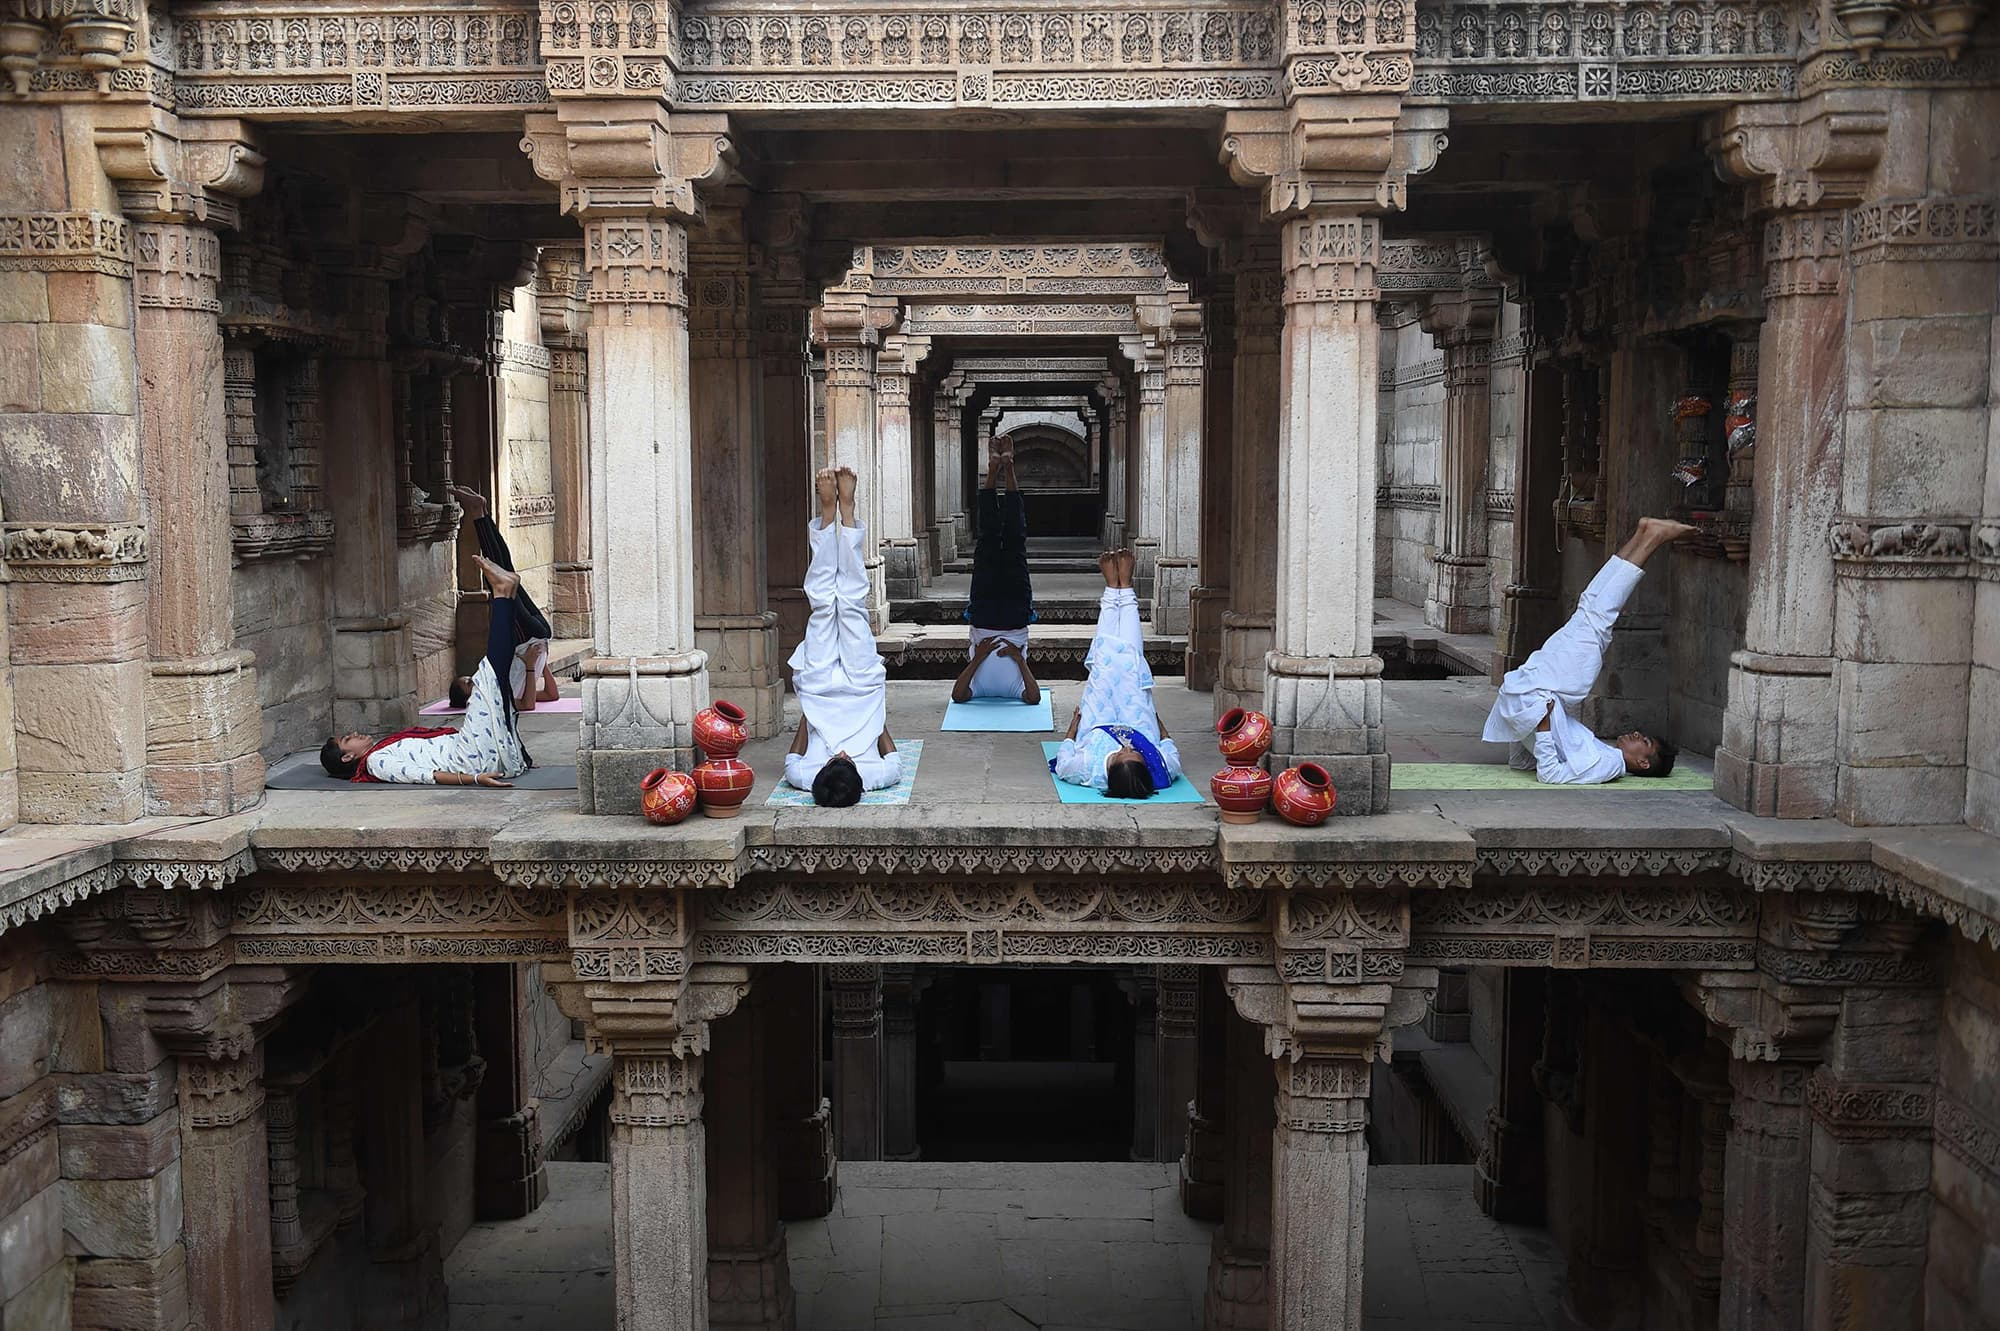 Indian yoga practitioners take part in a yoga session on International Yoga Day at the 15th century Adalaj Stepwell in Adalaj, some 40km from Ahmedabad in western Gujarat state, on June 21. — AFP